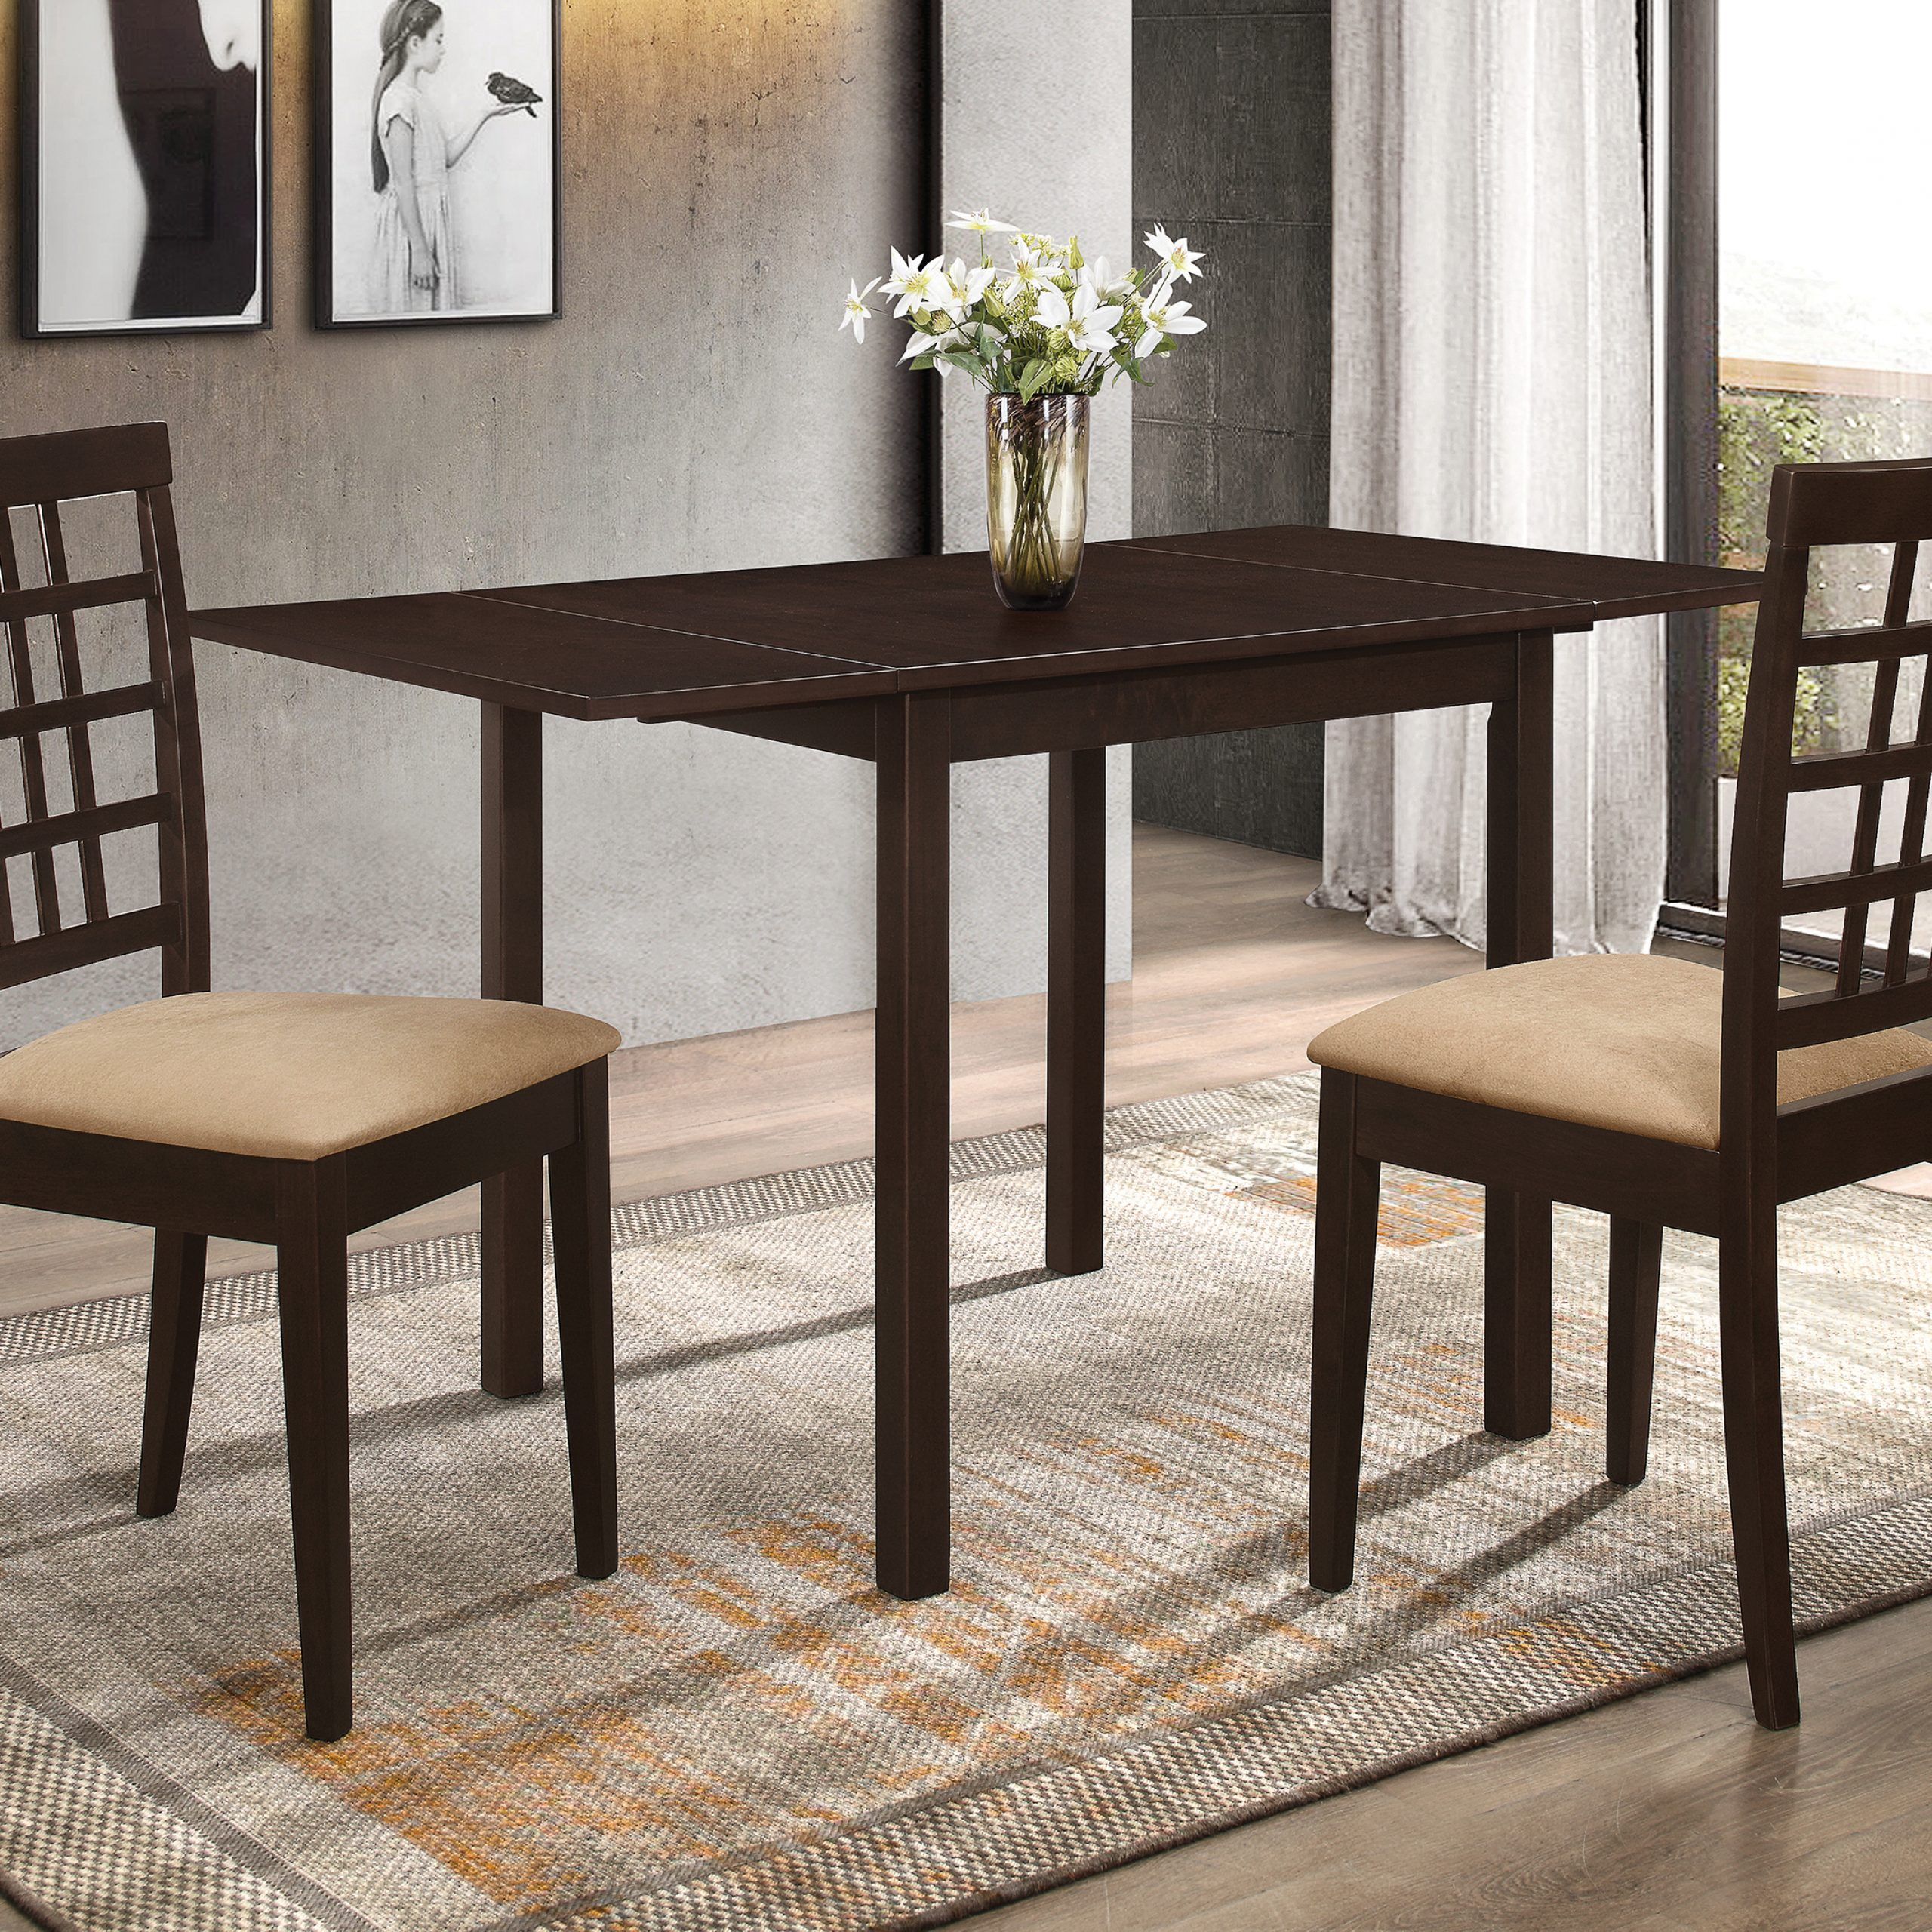 Well Liked Kelso Rectangular Dining Table With Drop Leaf Cappuccino Inside Transitional 4 Seating Drop Leaf Casual Dining Tables (View 25 of 30)